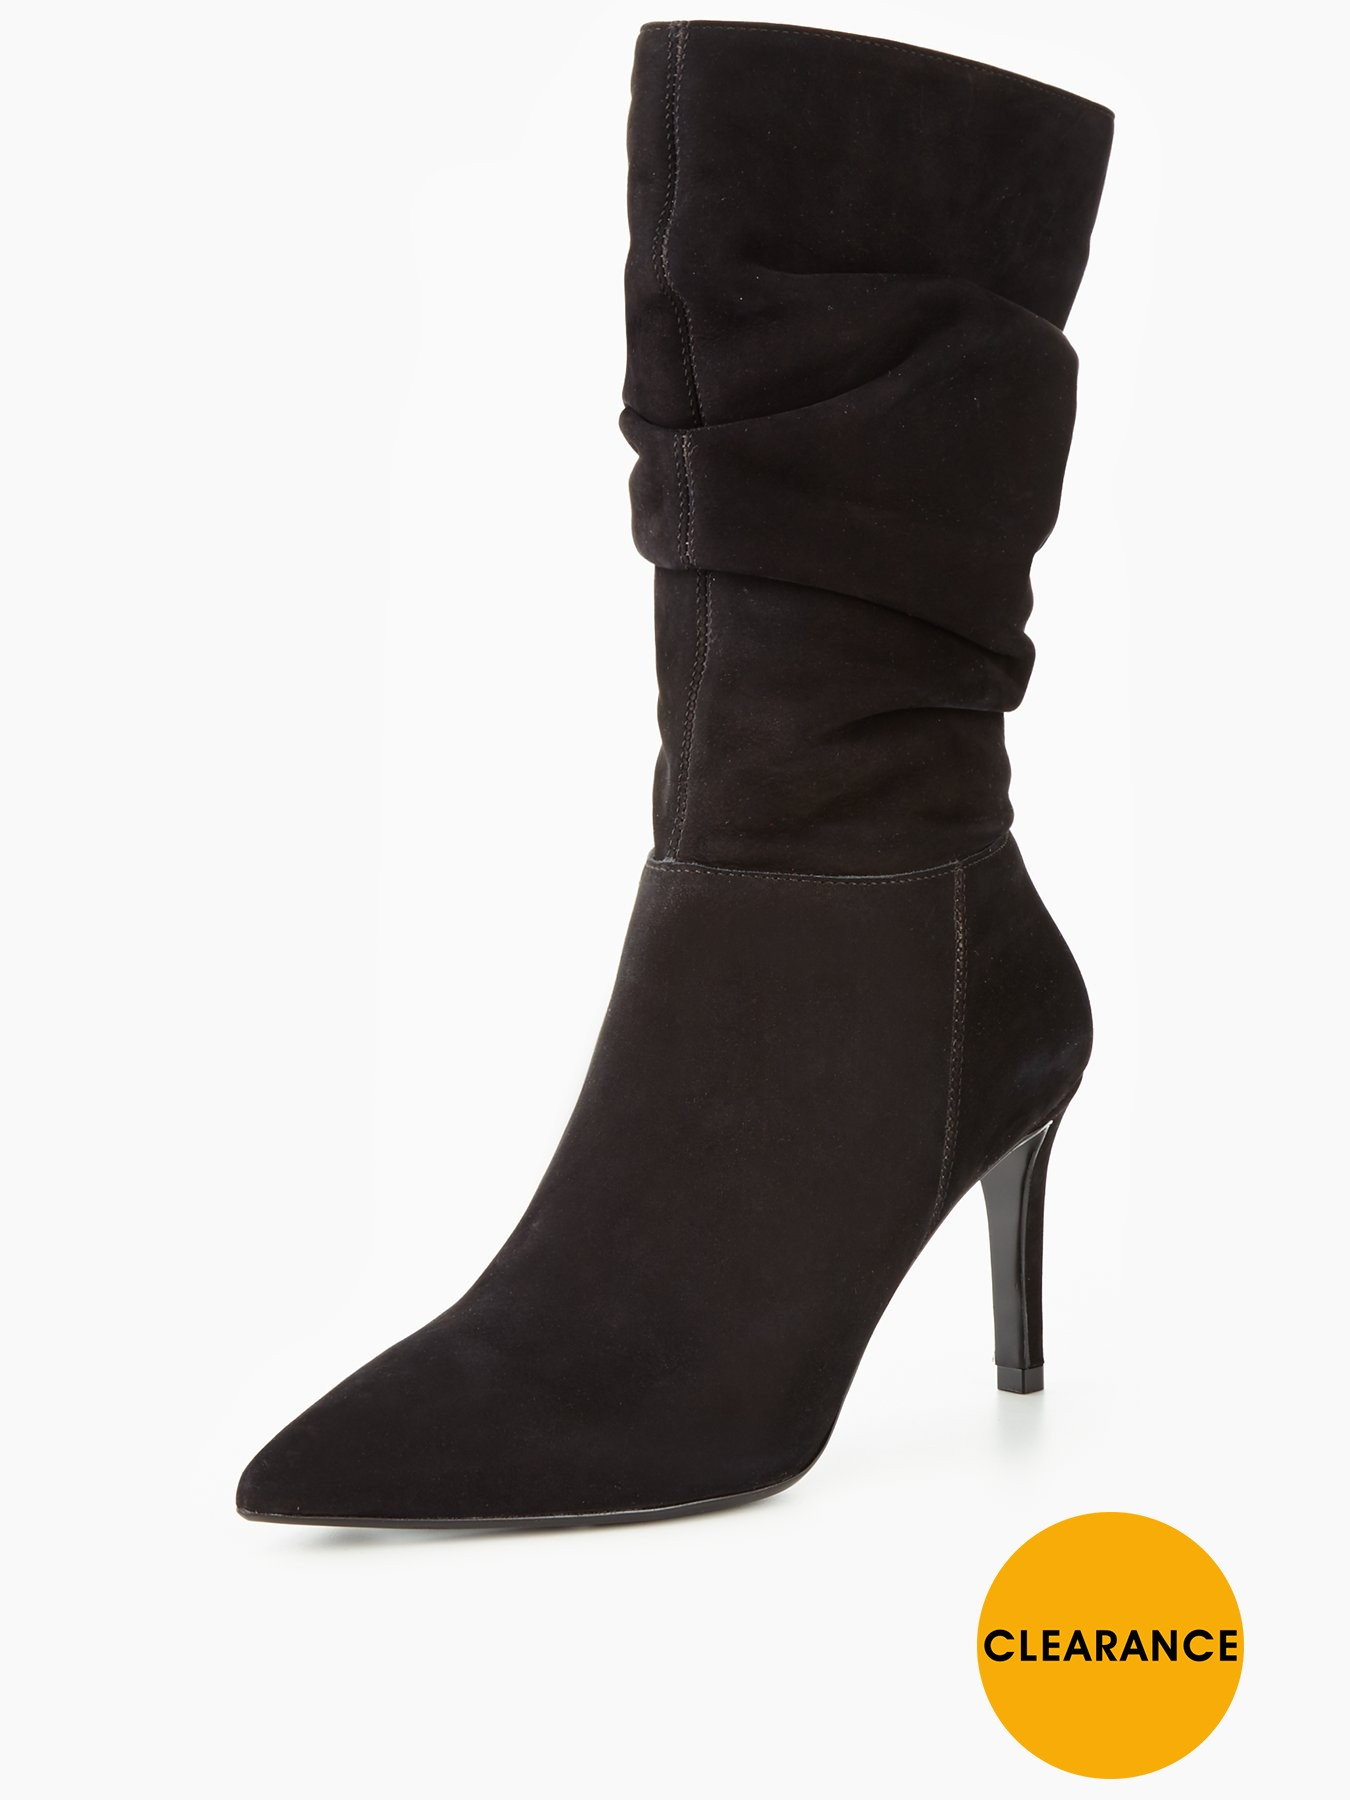 Dune Reenie Dressy Ruched Calf Boot 1600201143 Women's Shoes Dune Boots